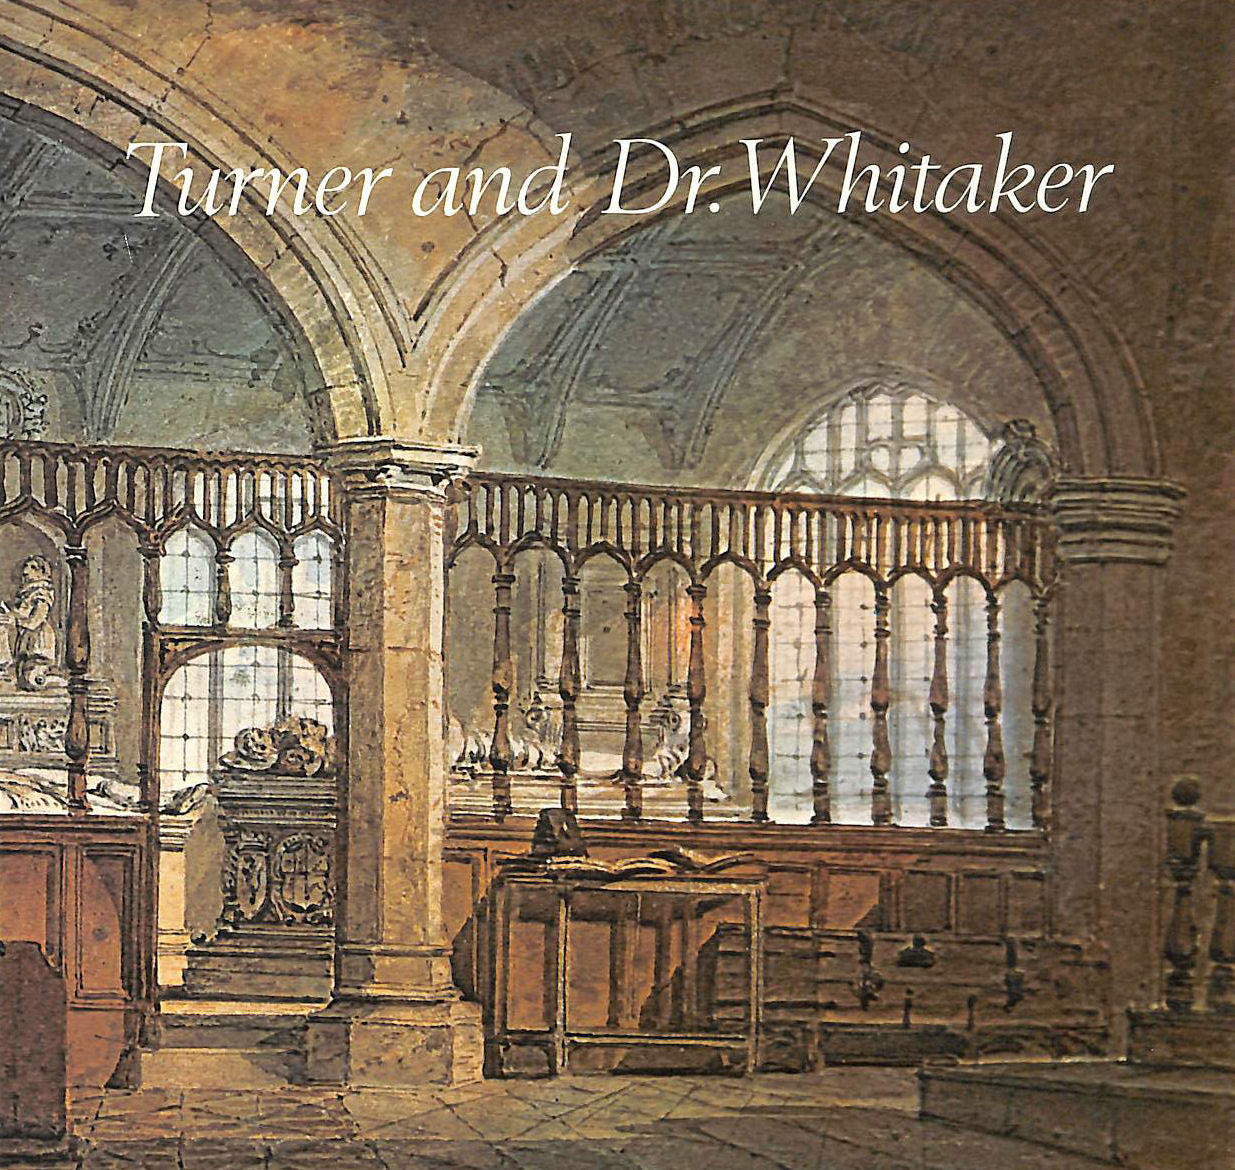 Image for Turner And Dr. Whitaker: townley Hall Art Gallery